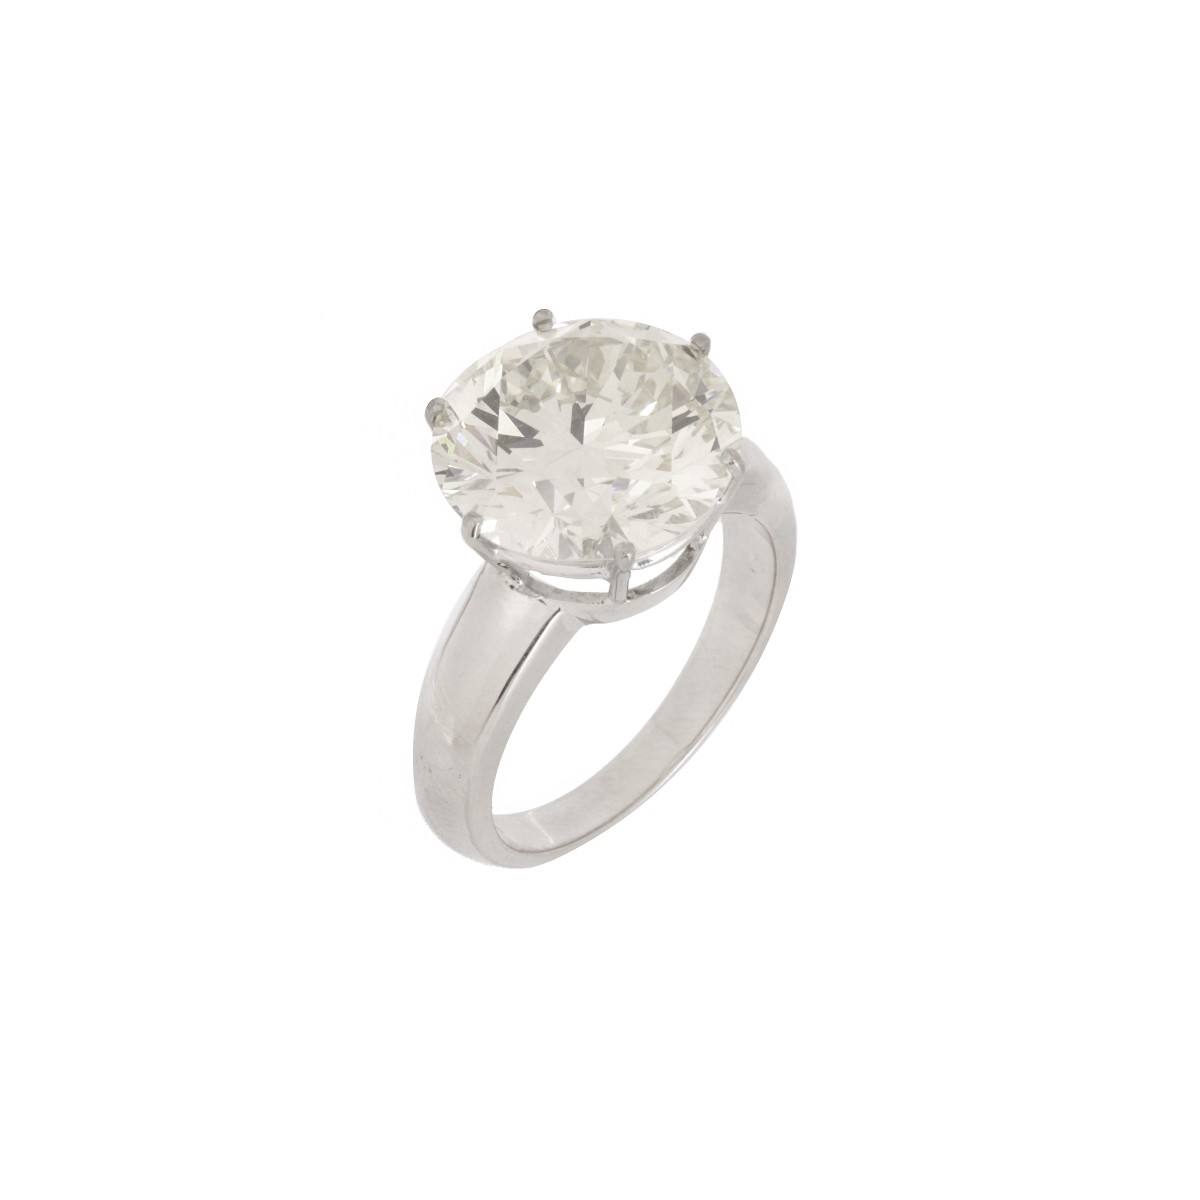 9.39 Carat Diamond and 18K Engagement Ring